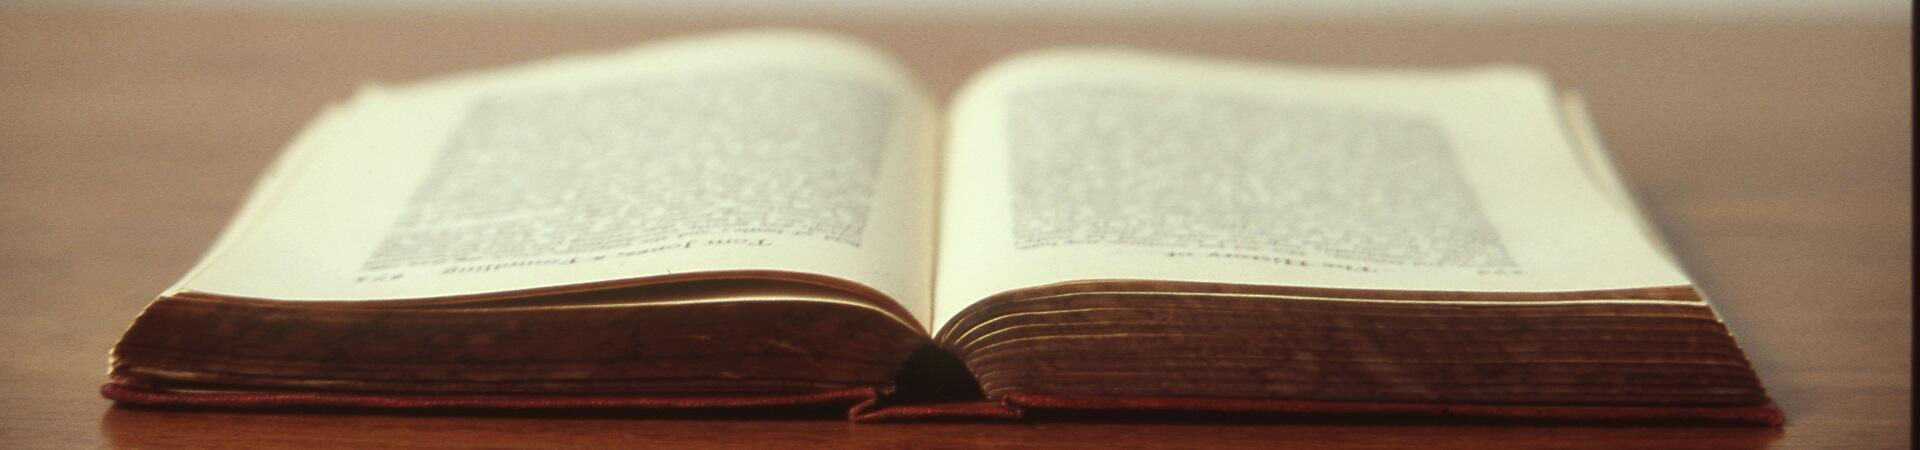 blur-old-antique-book.jpg